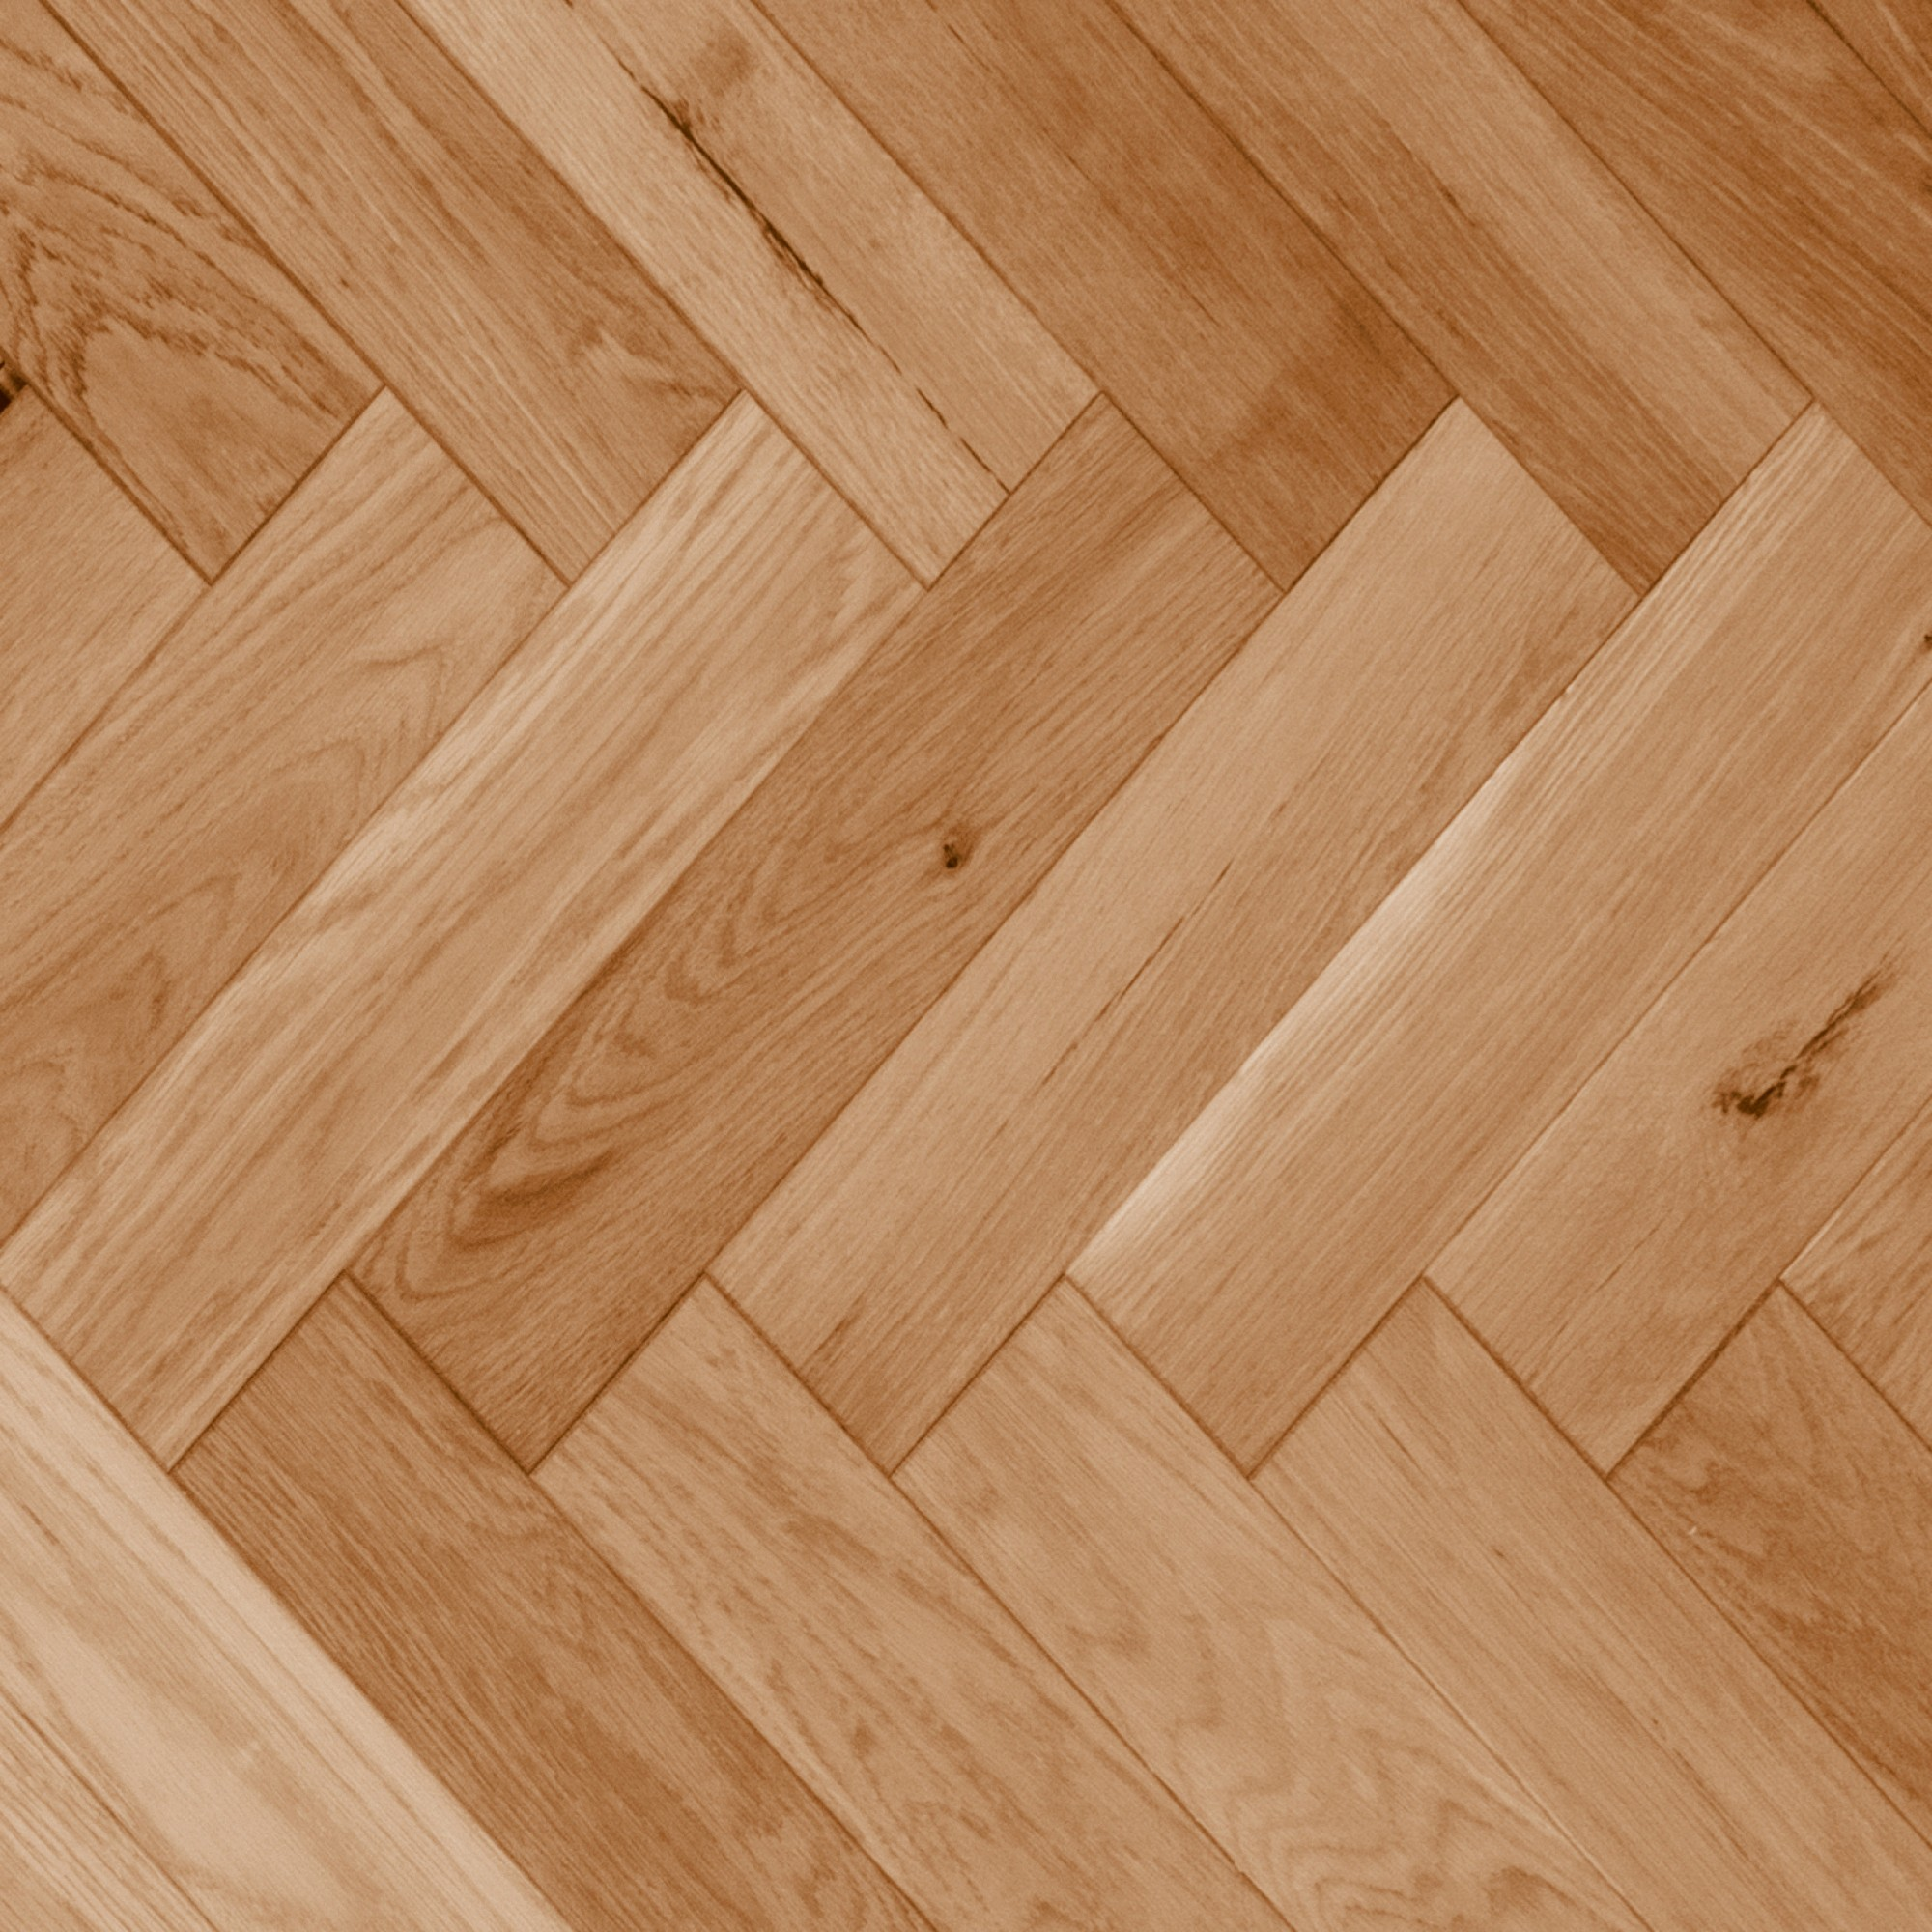 Herringbone Red Oak Natural Smooth Vintage Hardwood